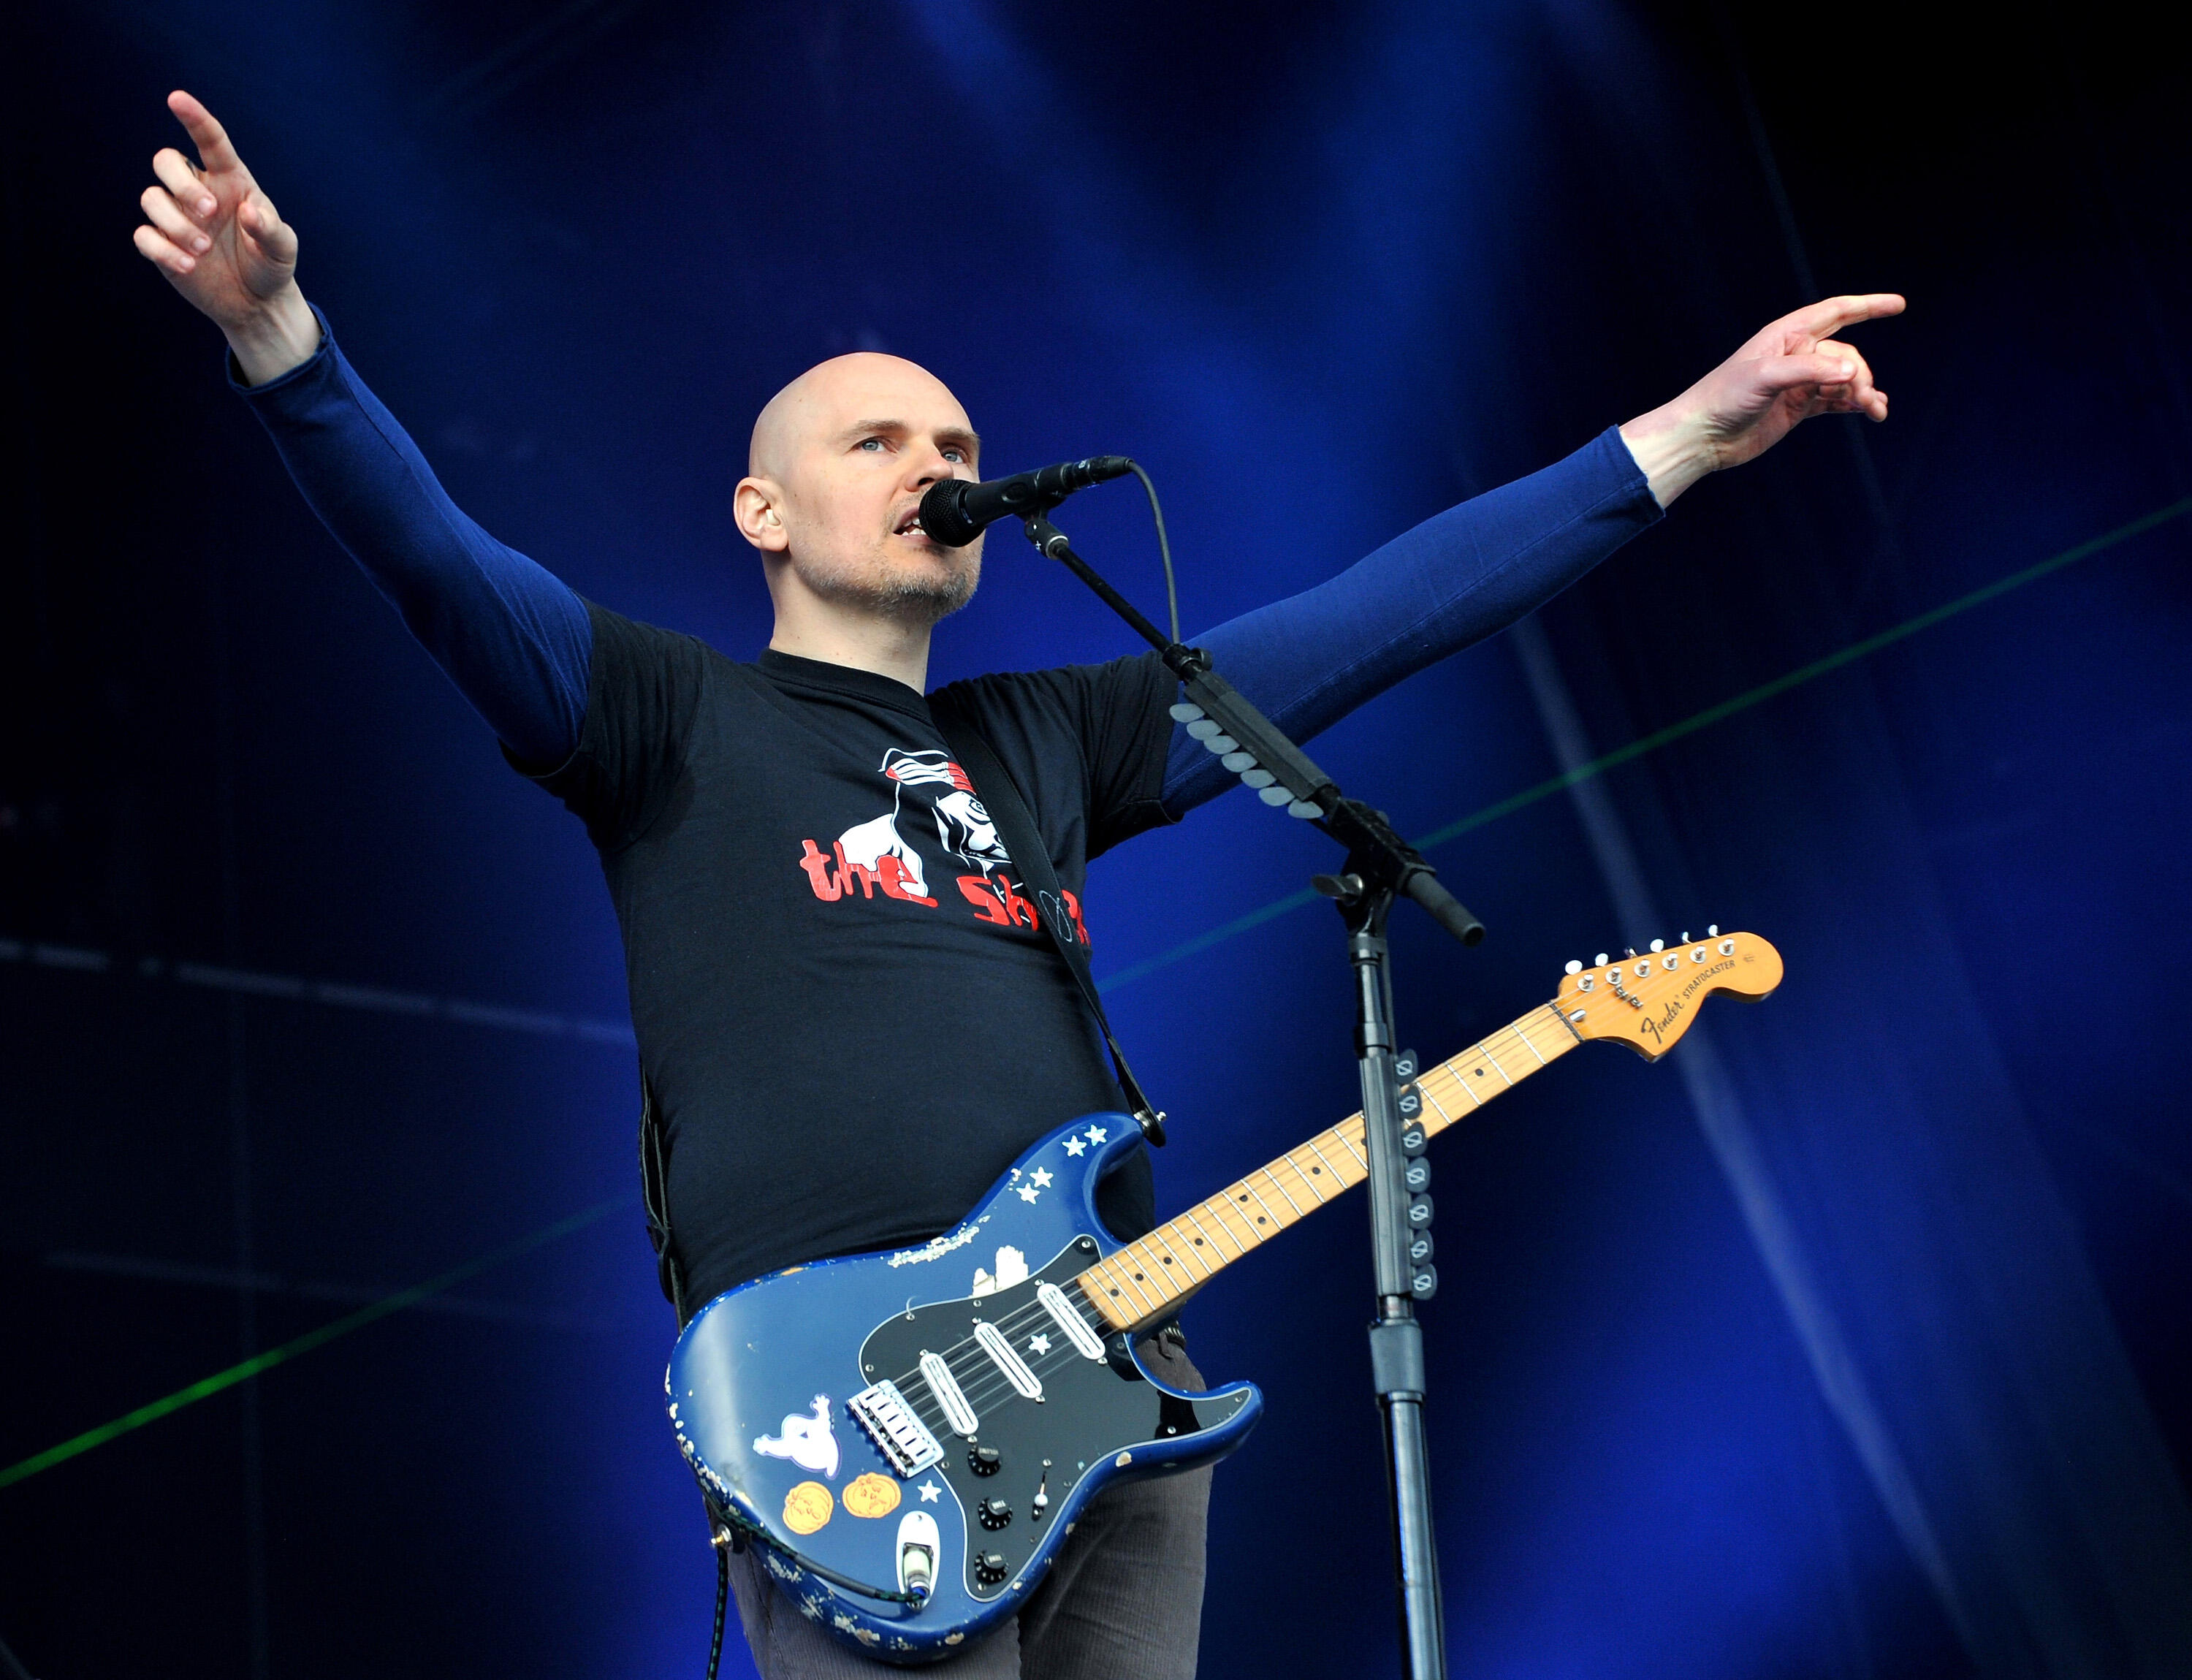 10 Things You Might Not Know about Birthday Boy Billy Corgan